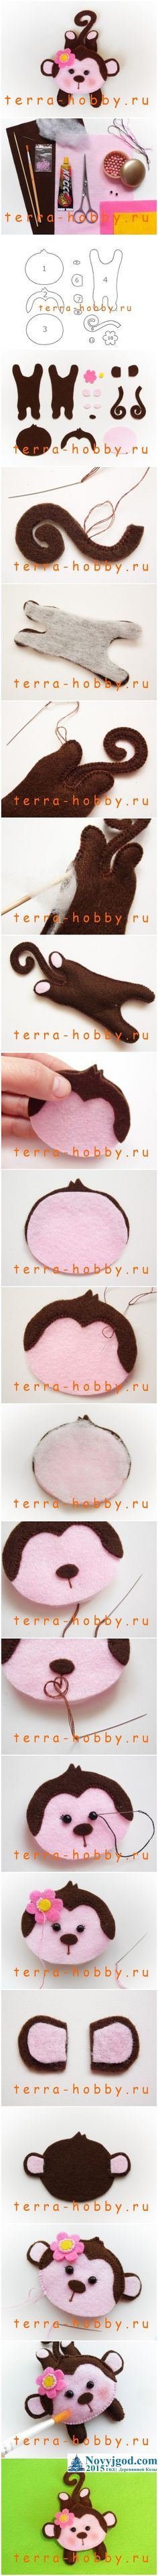 Поделка Обезьянка своими руками из фетра(ткани) Felt Christmas Decorations, Felt Christmas Ornaments, Felt Patterns, Stuffed Toys Patterns, Felt Crafts, Crafts To Make, Cute Sewing Projects, Crochet Bracelet, Baby Kind